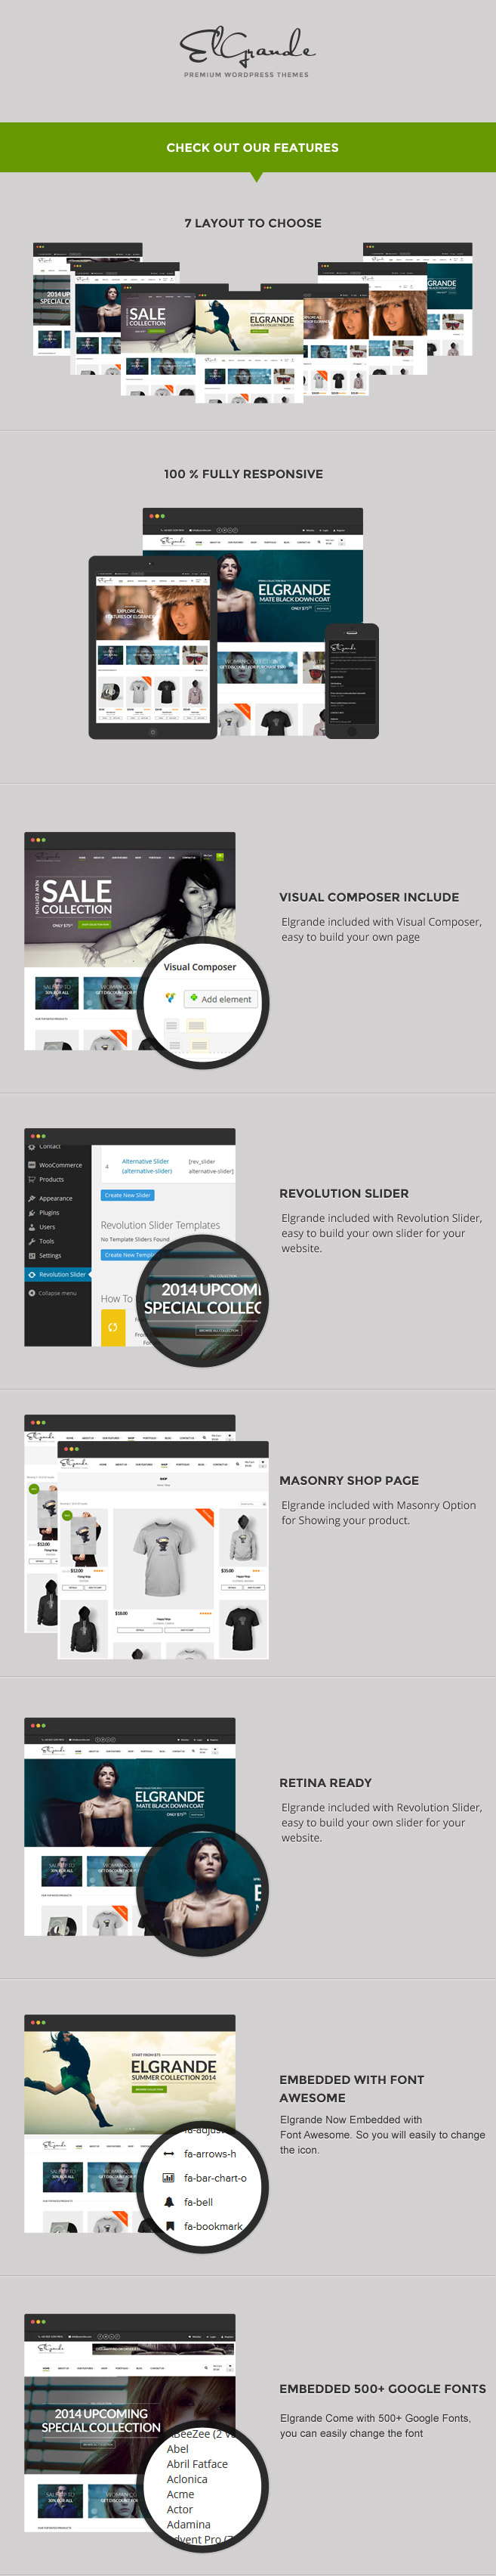 Elgrande - 7 Beautiful Layouts eCommerce Theme